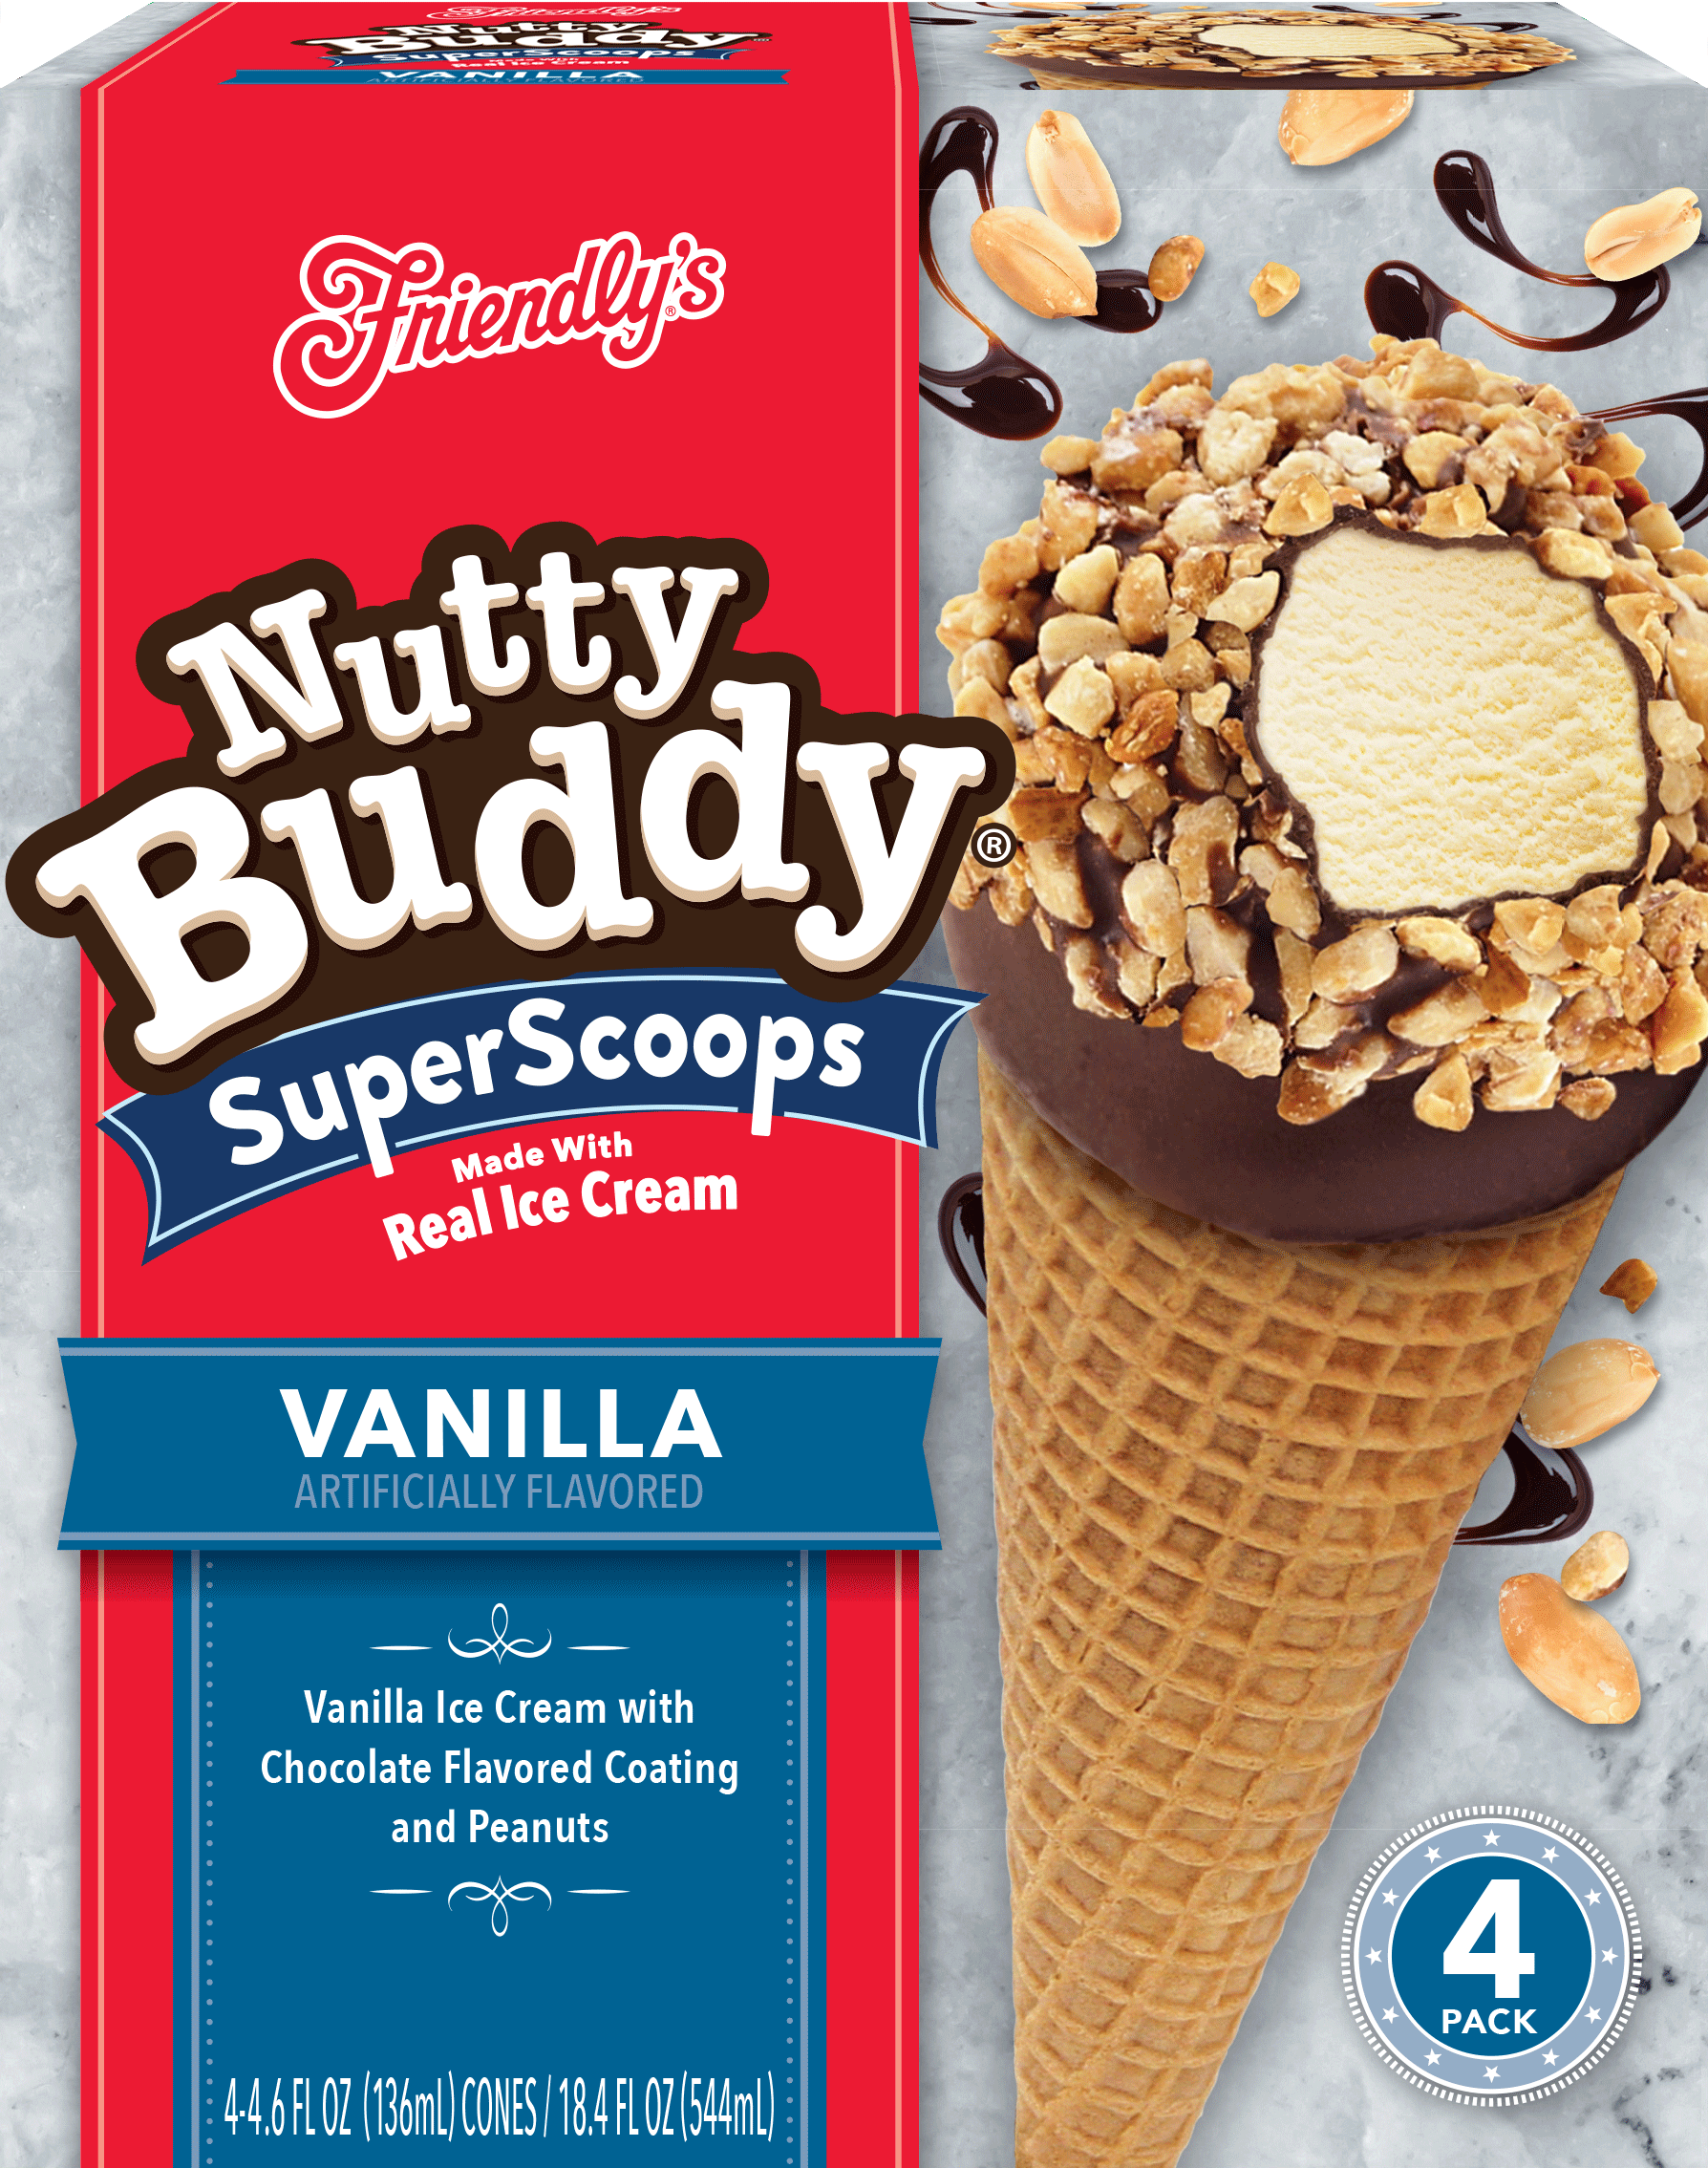 Vanilla Nutty Buddy